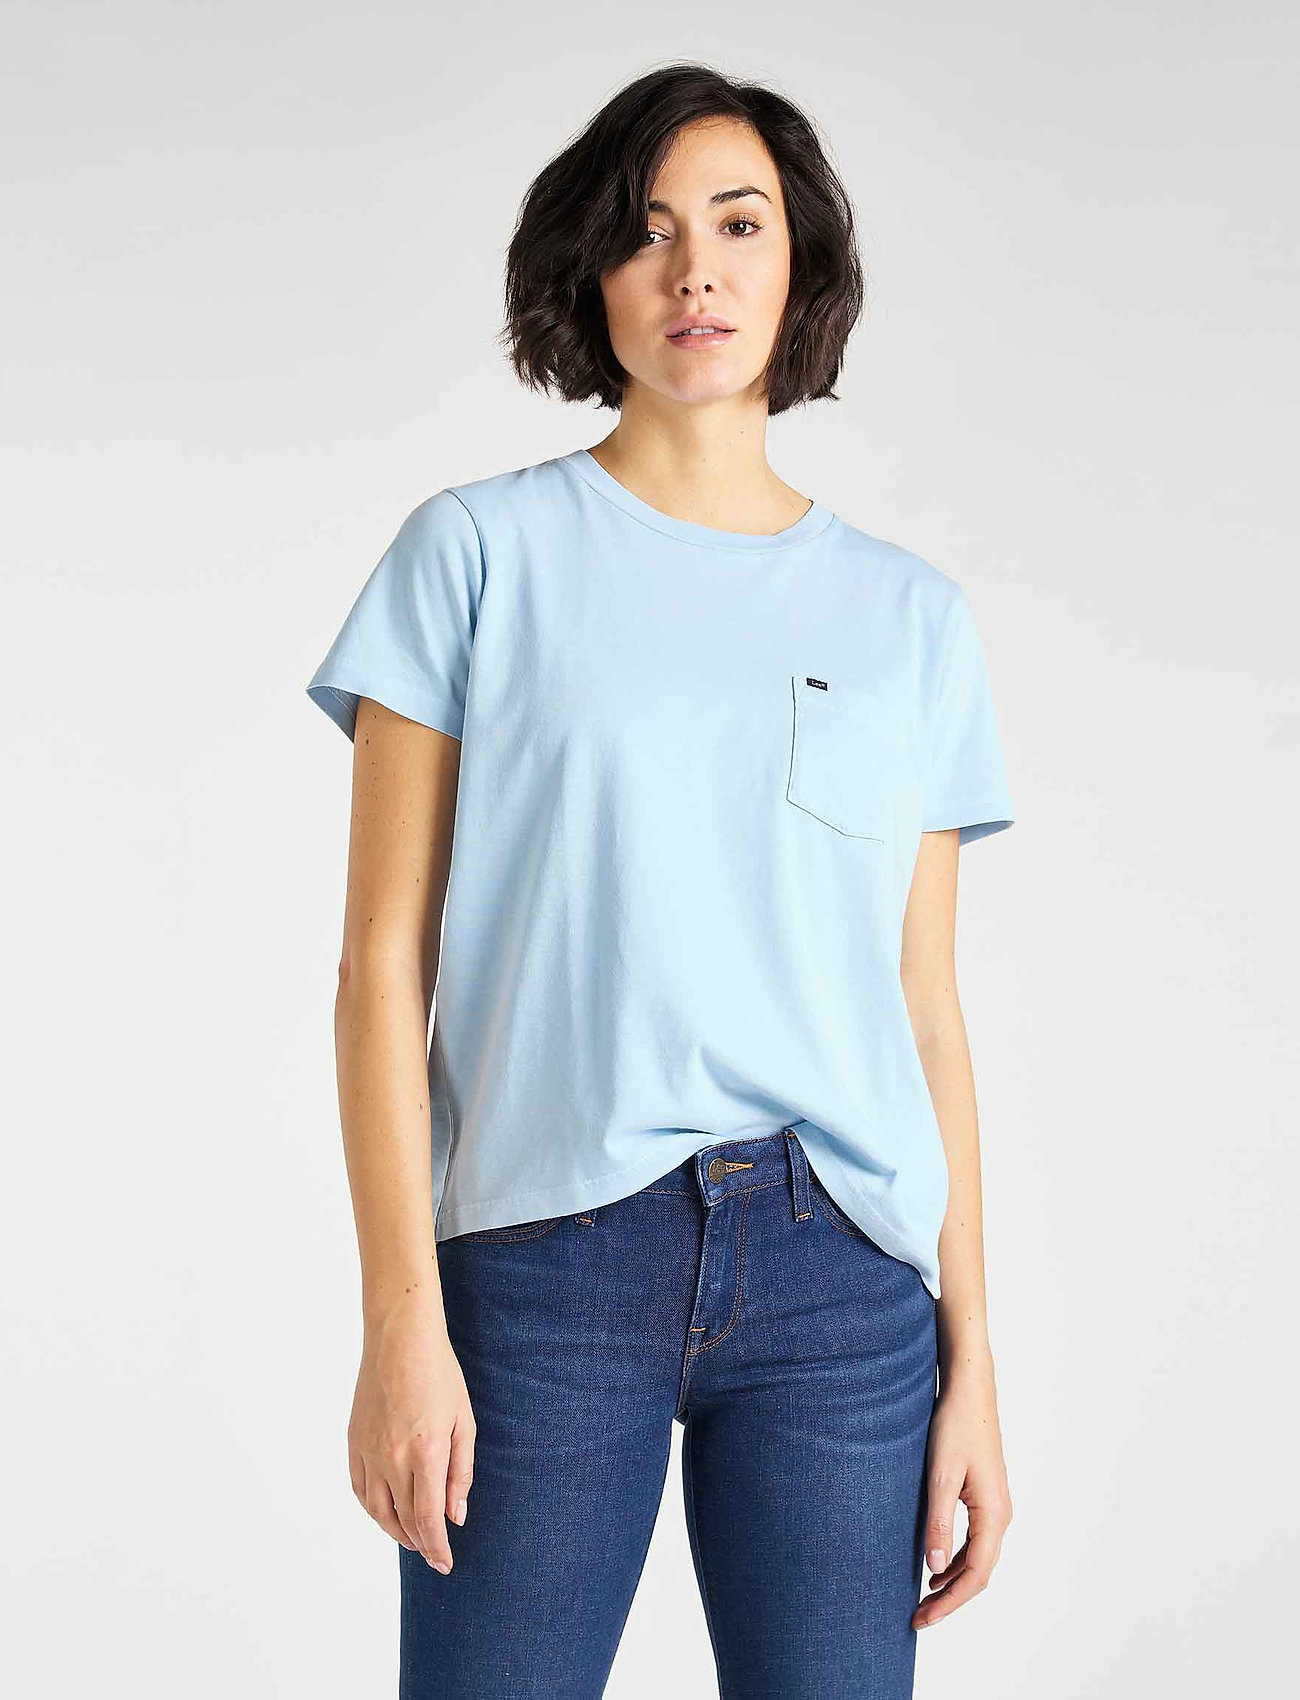 Lee Jeans - GARMENT DYED TEE - t-shirts - sky blue - 0